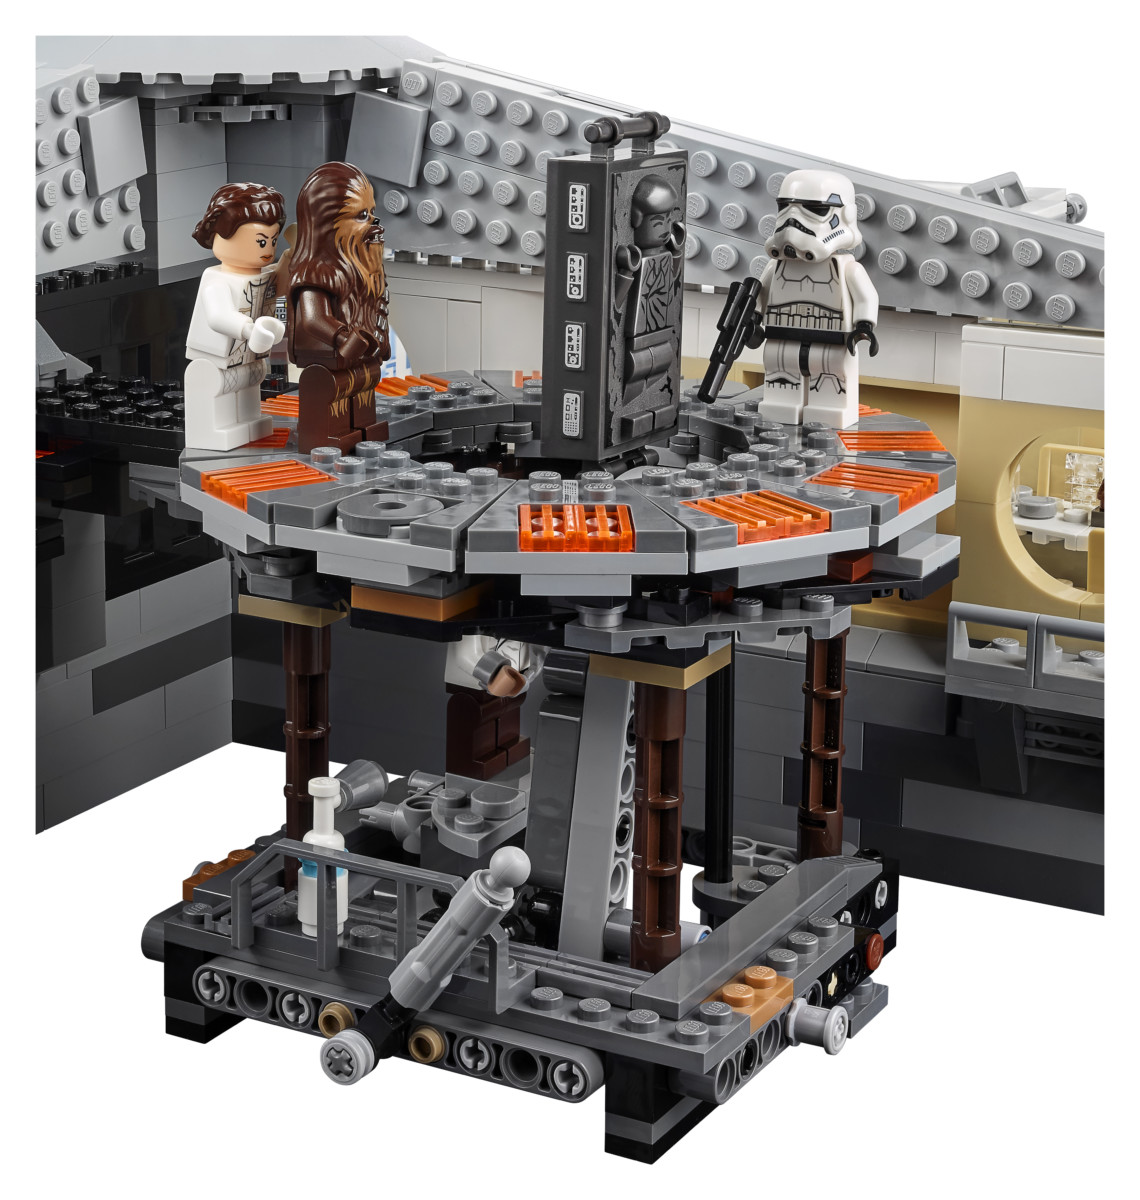 75222 back 08 - LEGO's Star Wars Betrayal at Cloud City is a brilliant recreation of the Empire Strikes Back